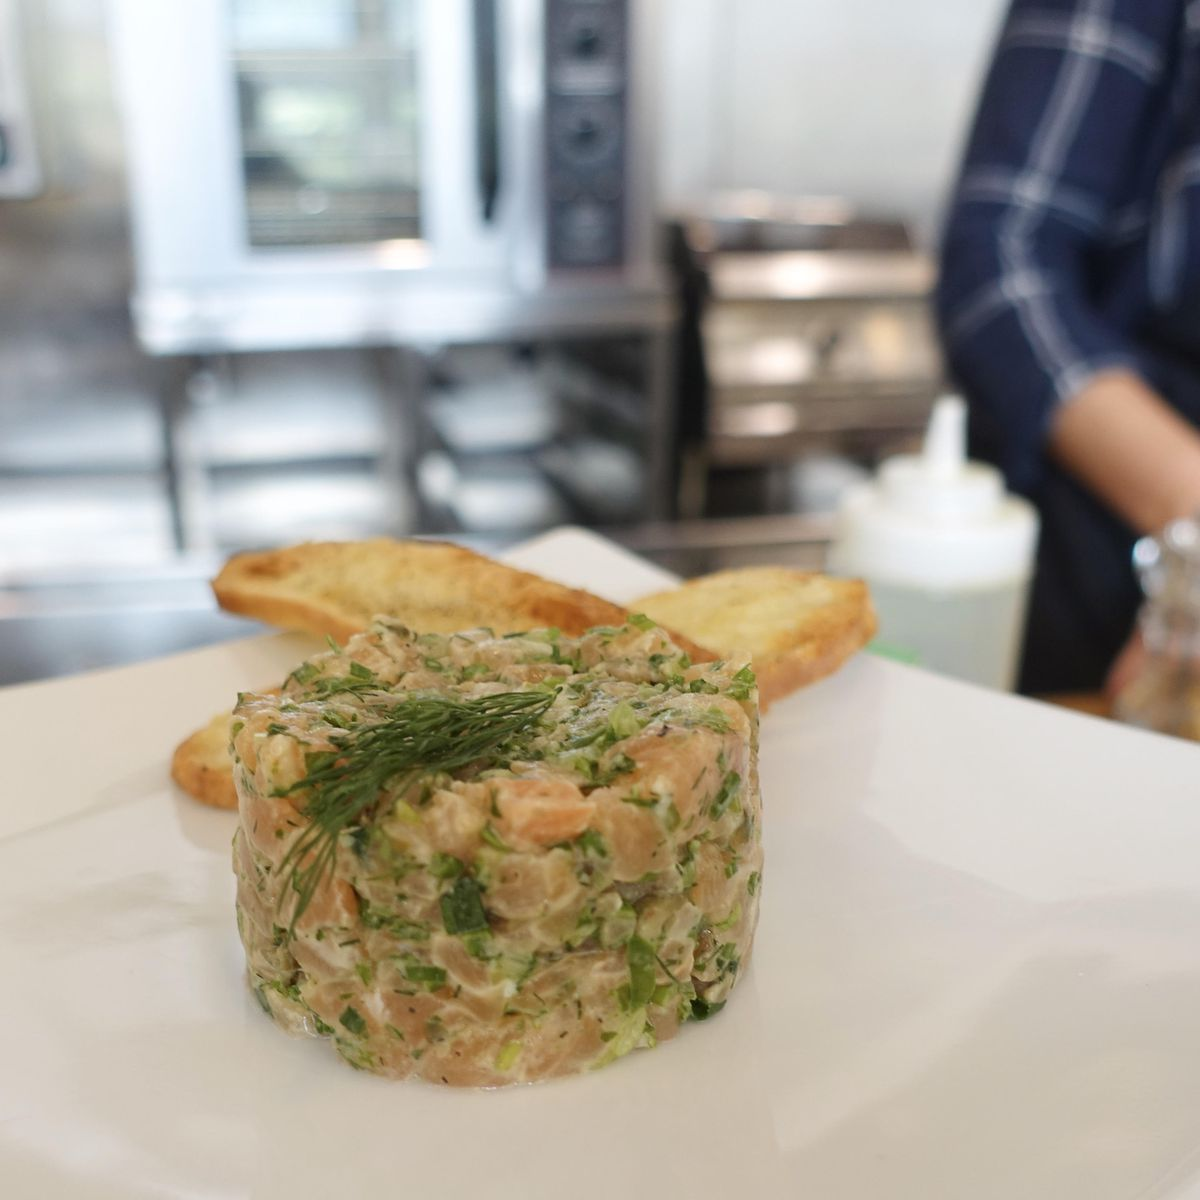 fish tartare on white plate with bread on the side